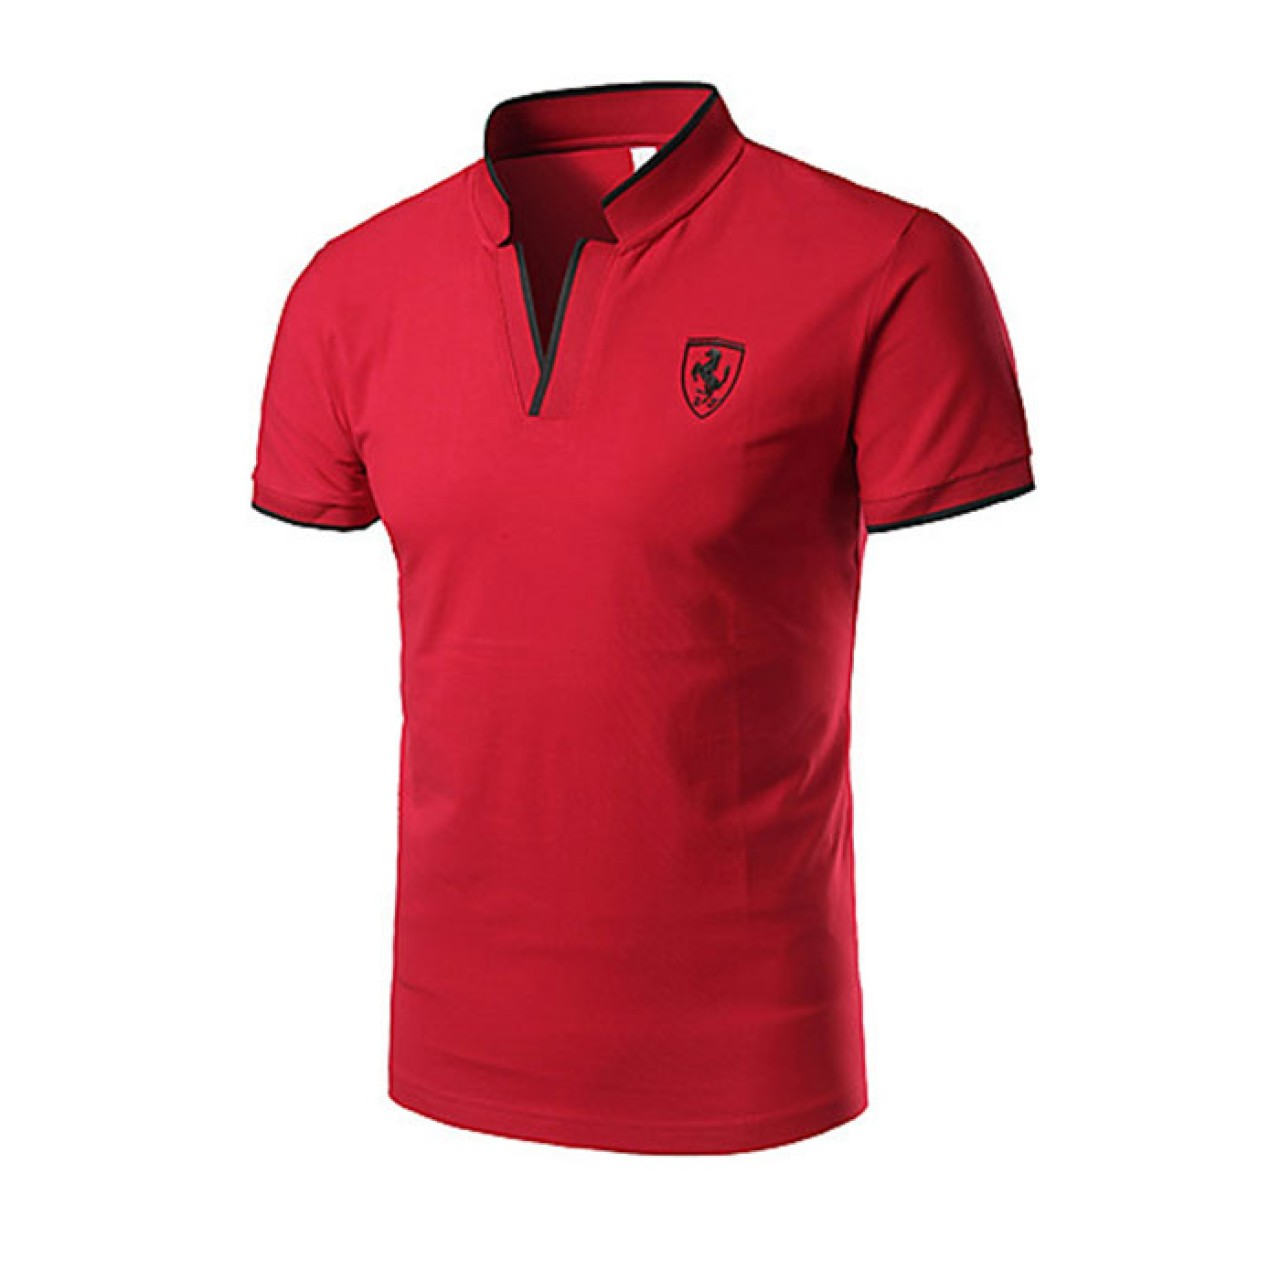 Men's New Short Collared Red Tees